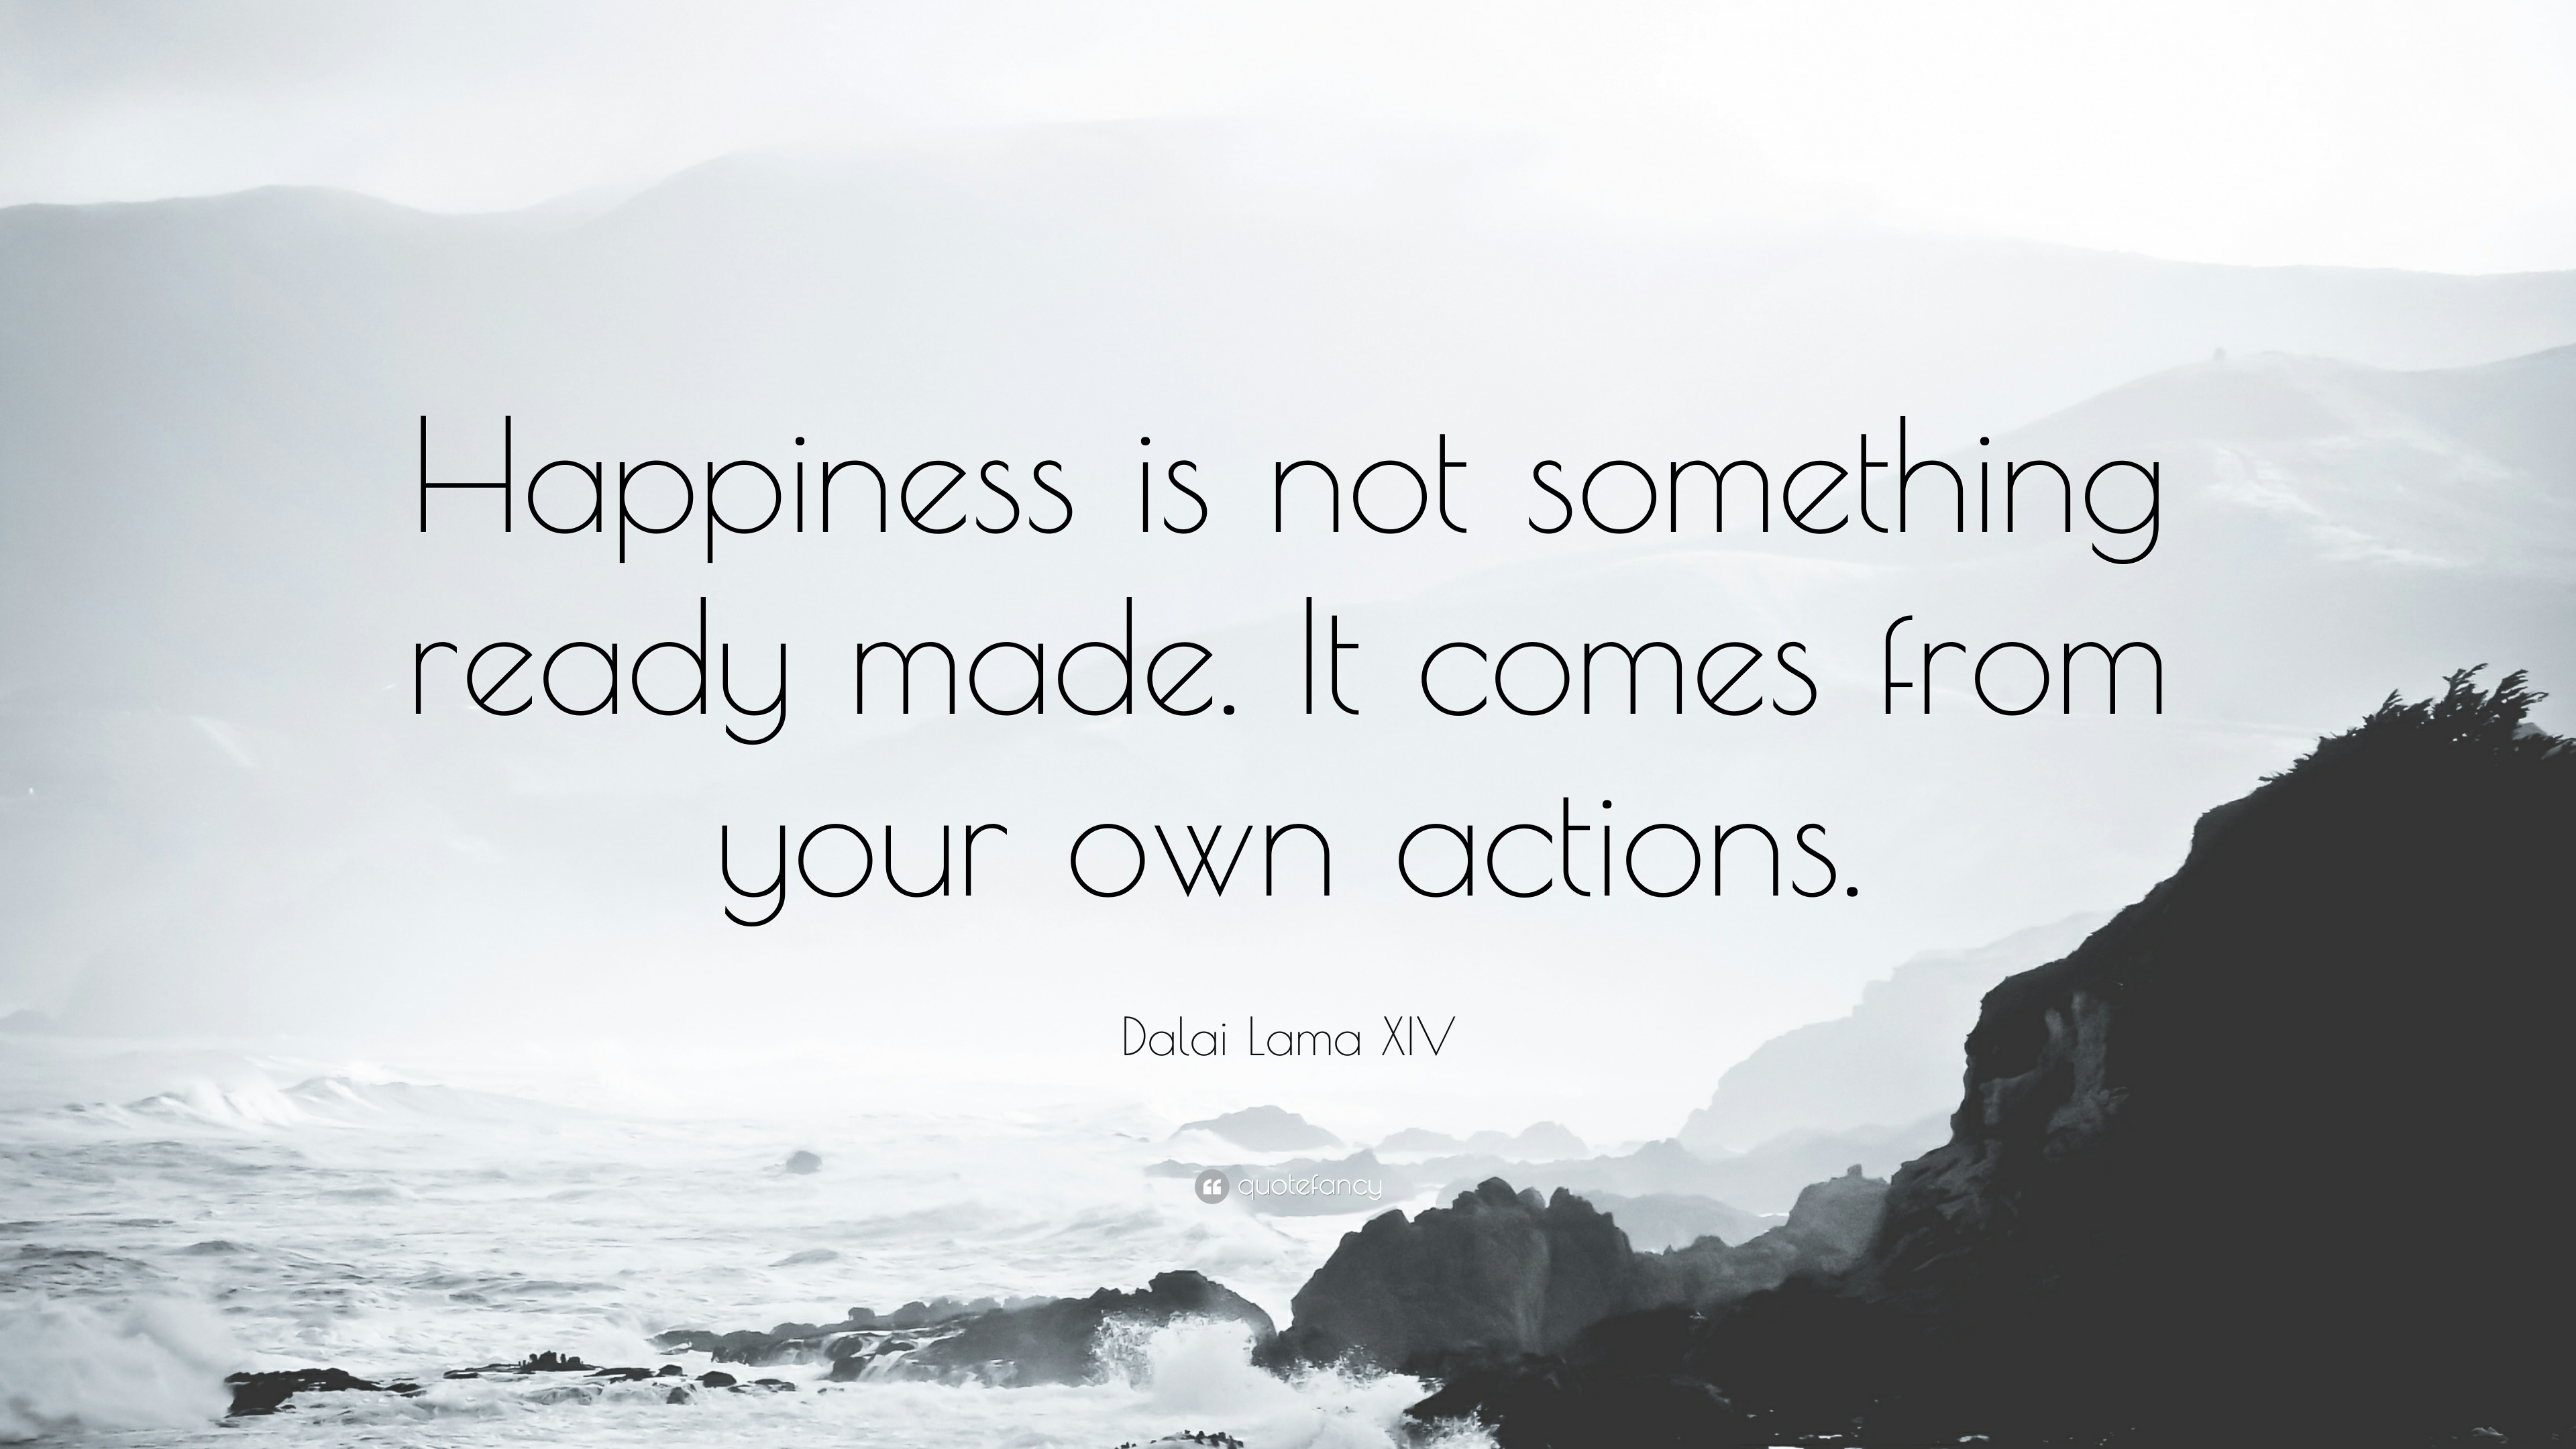 dalai lama xiv quote happiness is not something ready